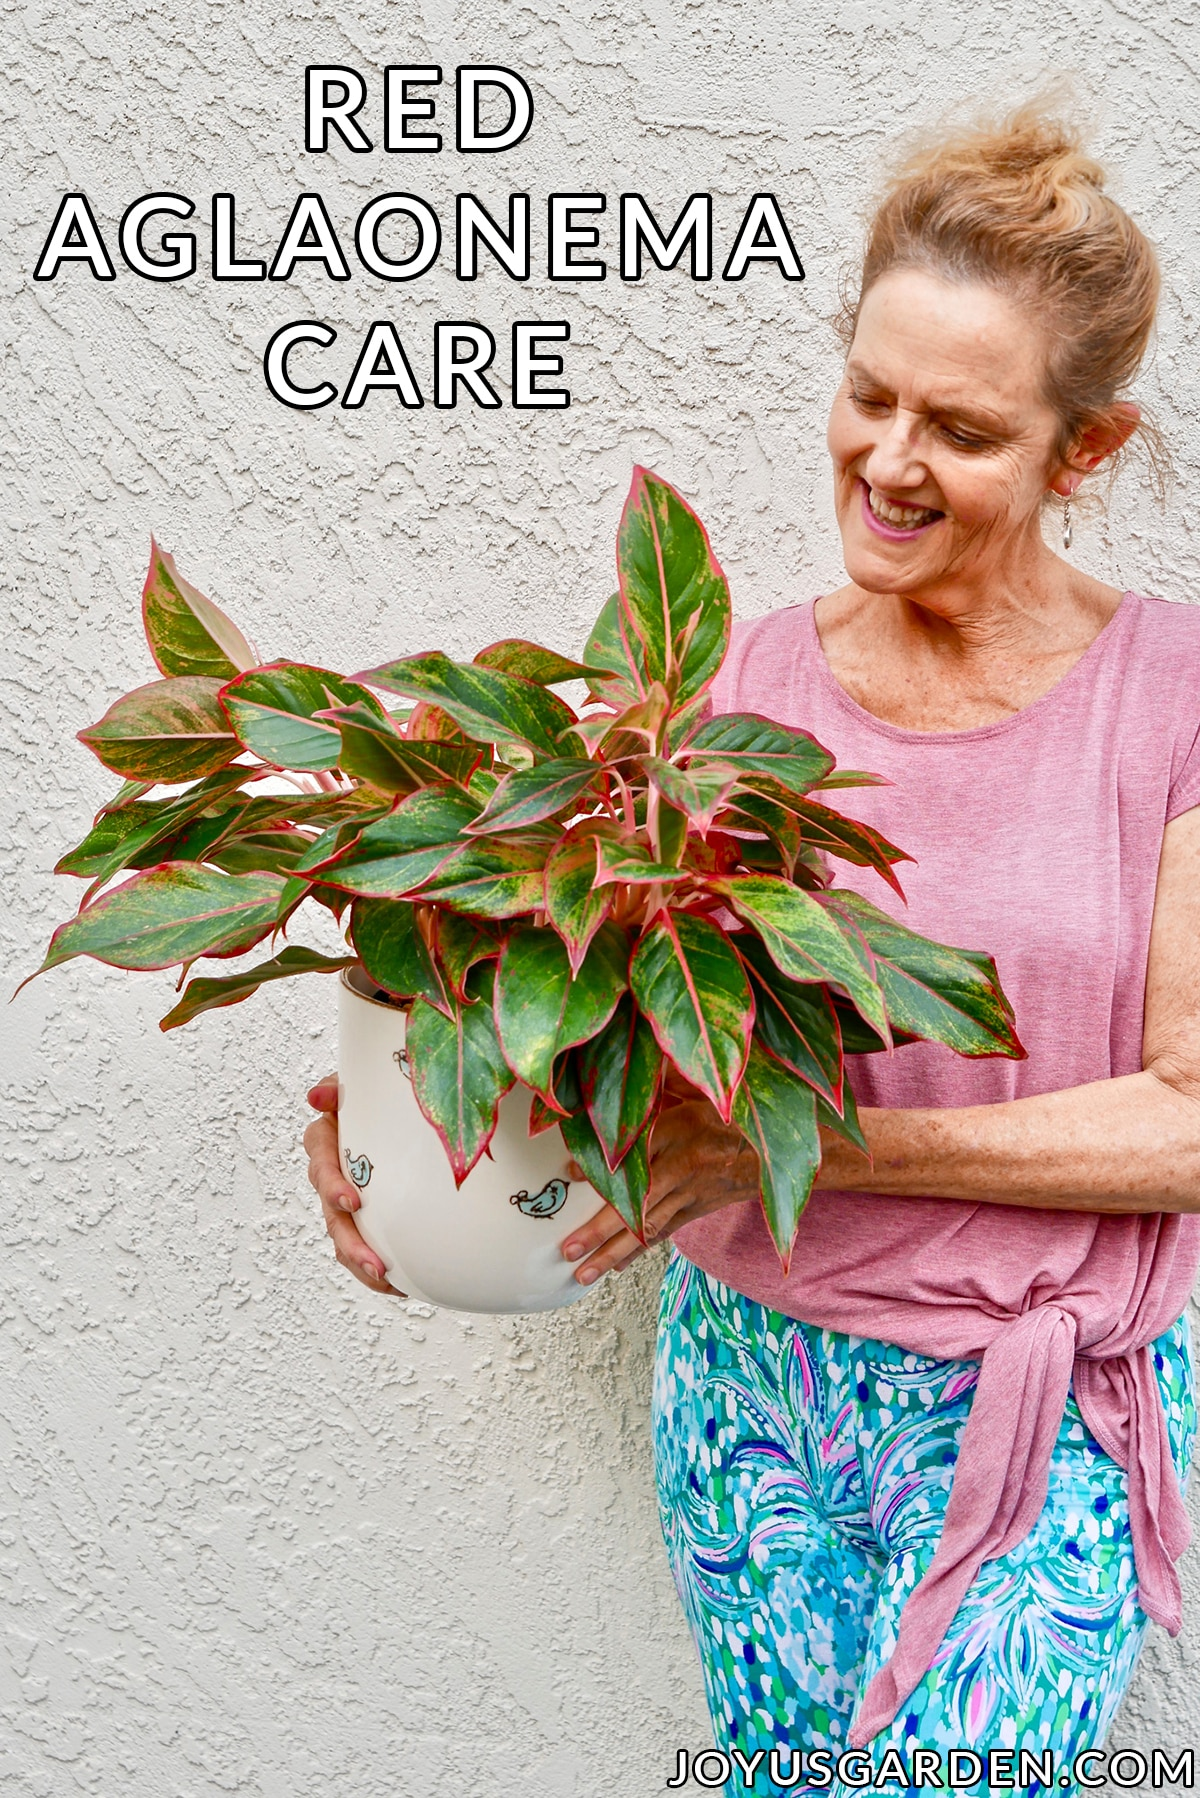 nell foster holds an aglaonema siam aurora red aglaonema in a ceramic pot the text reads red aglaonema care